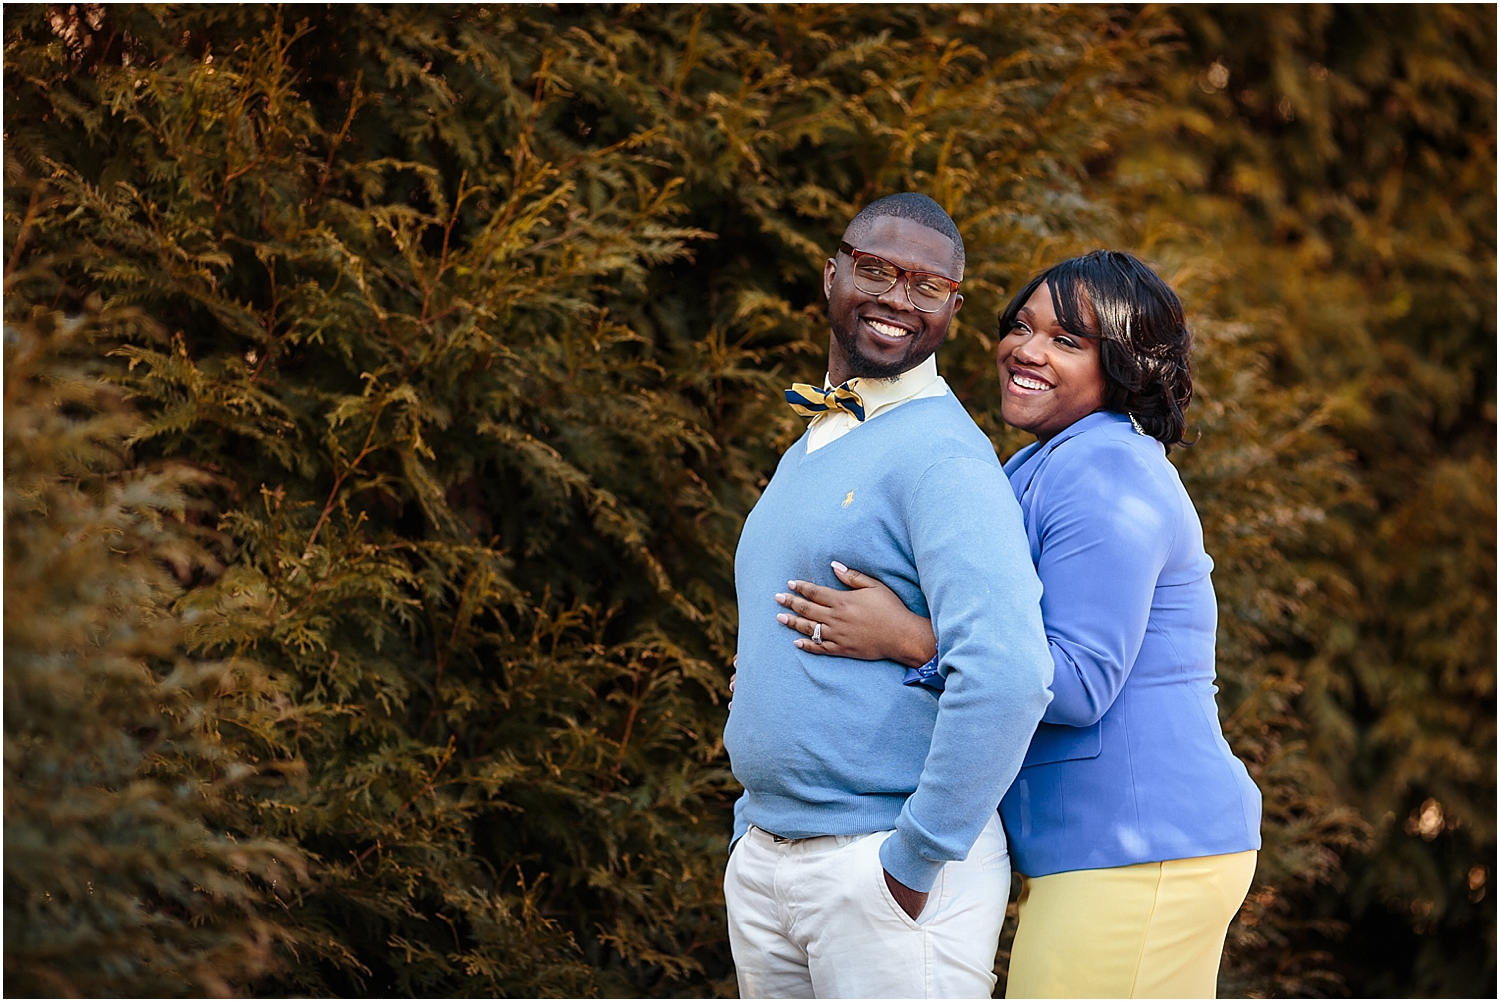 20150131-engagement-outdoor-winter-greenville-6_blog.jpg